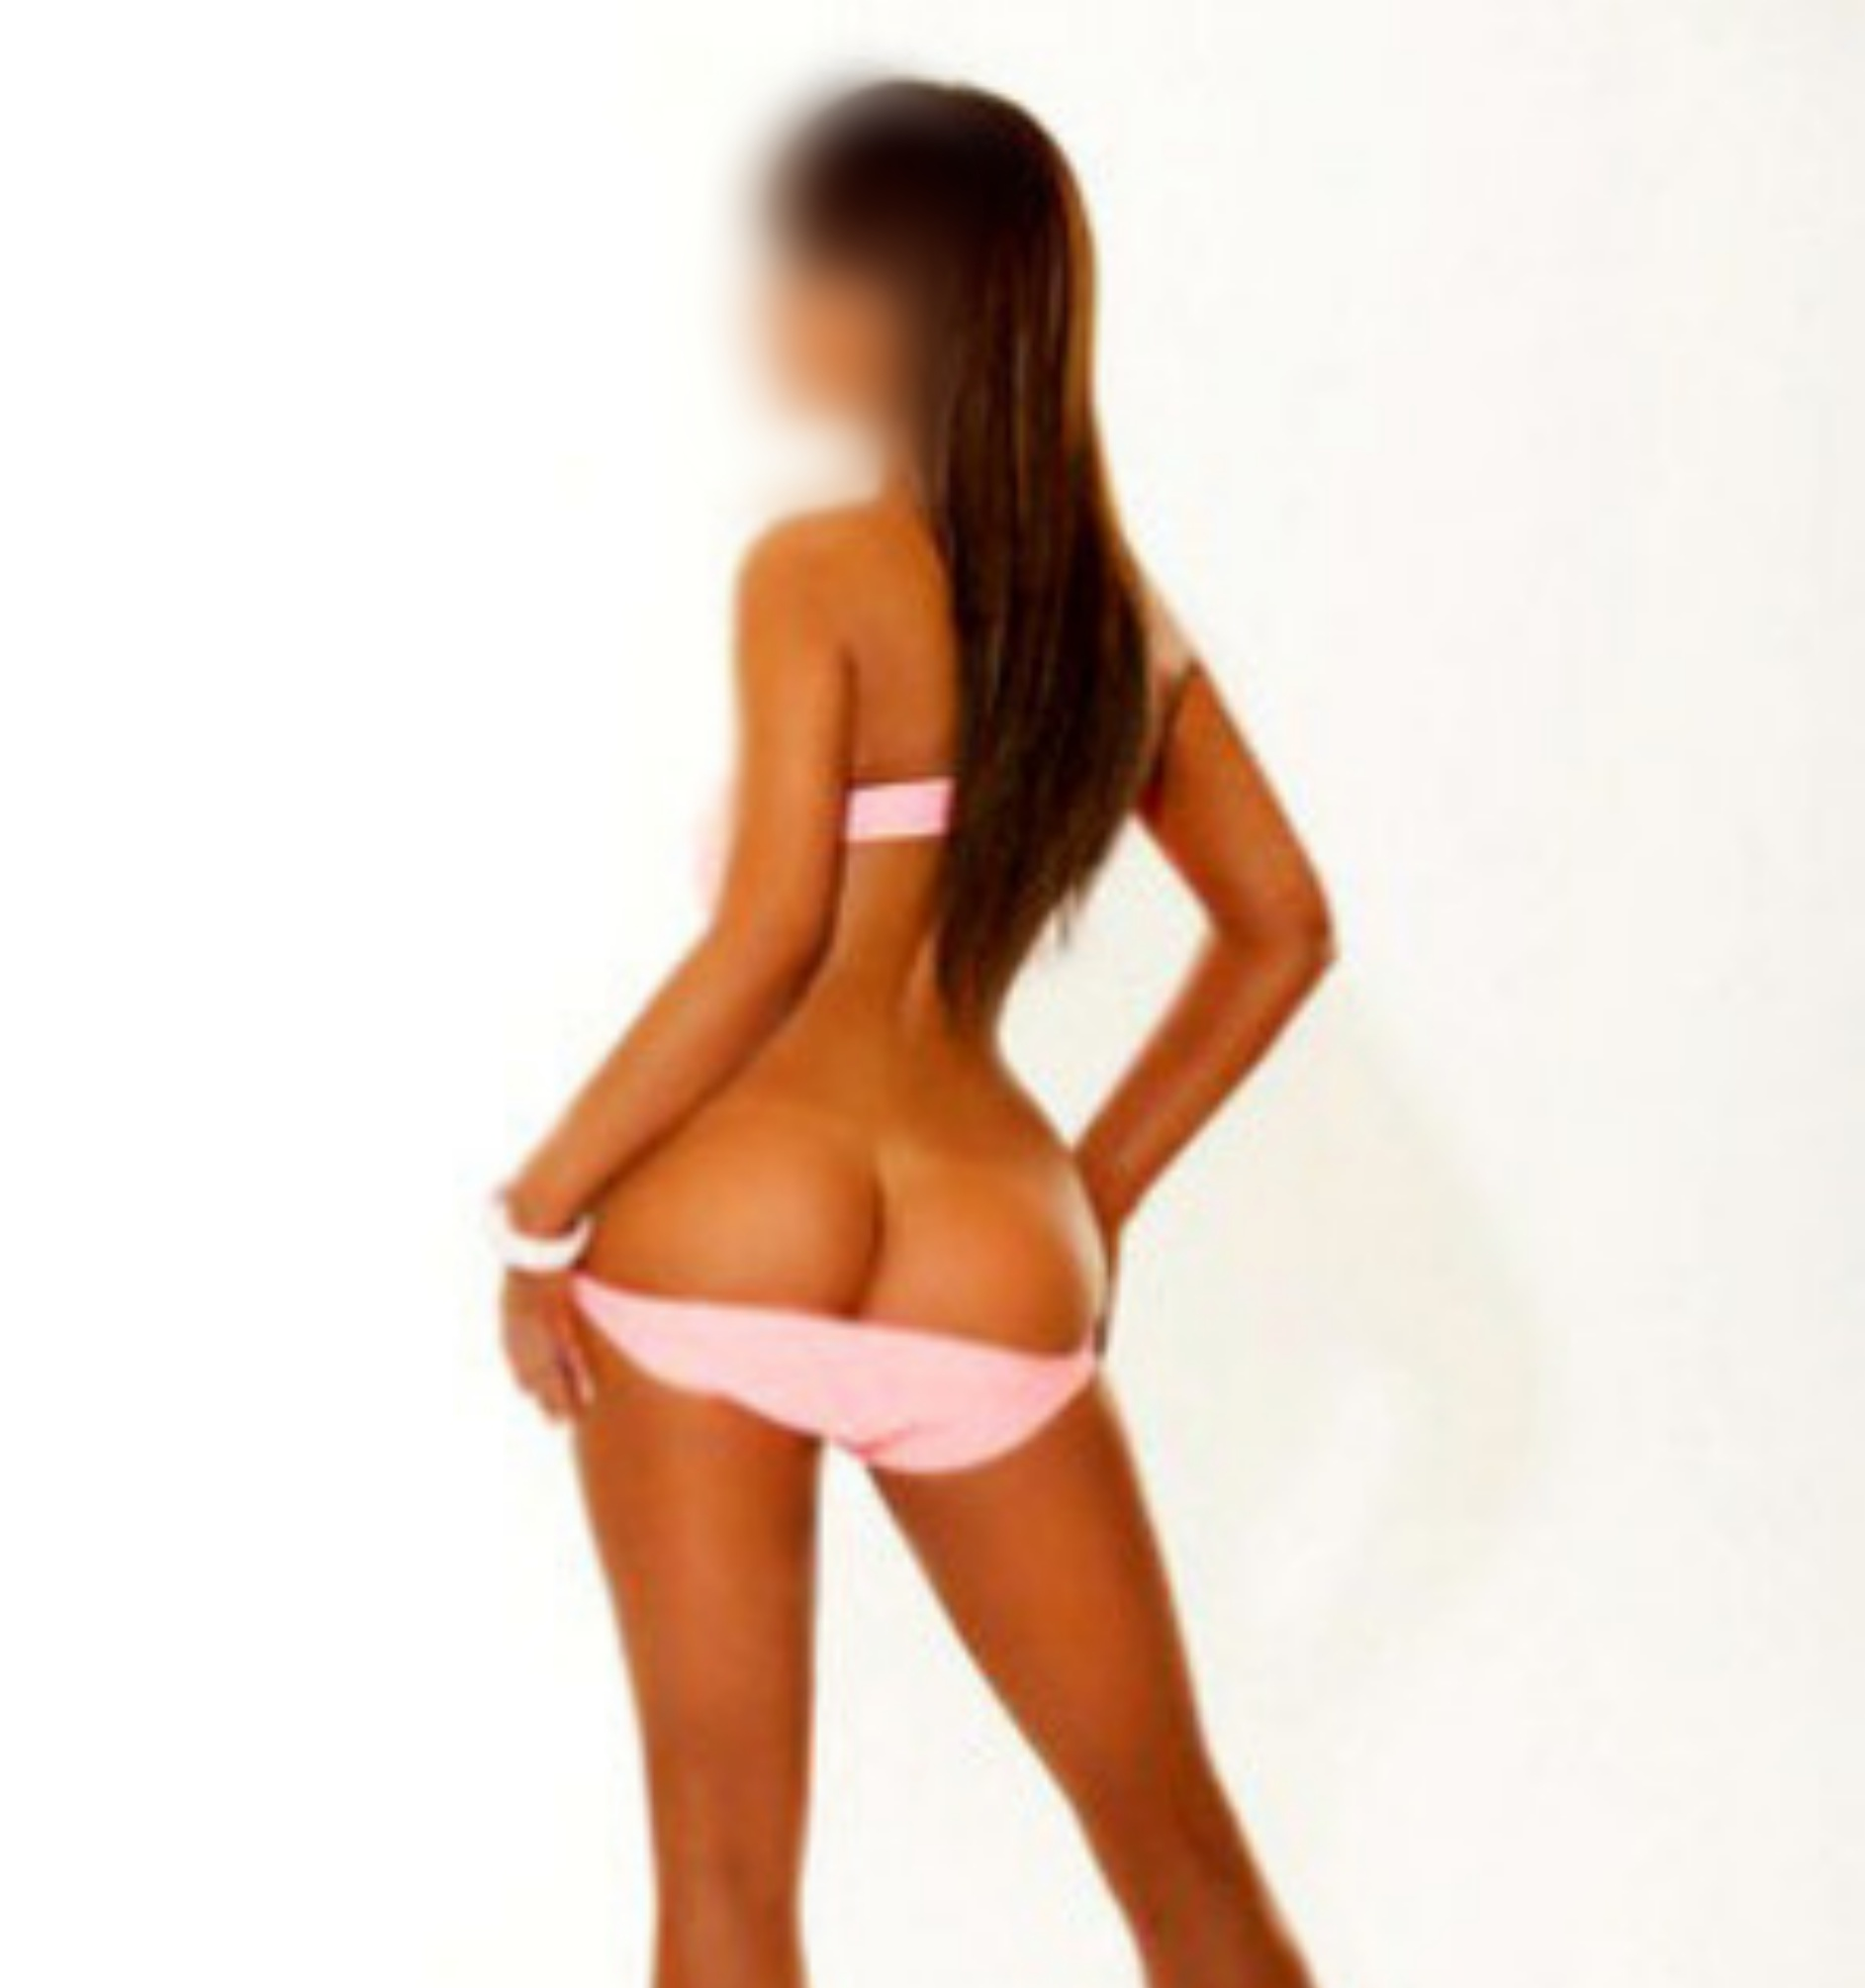 gdansk escort girls amelia escort